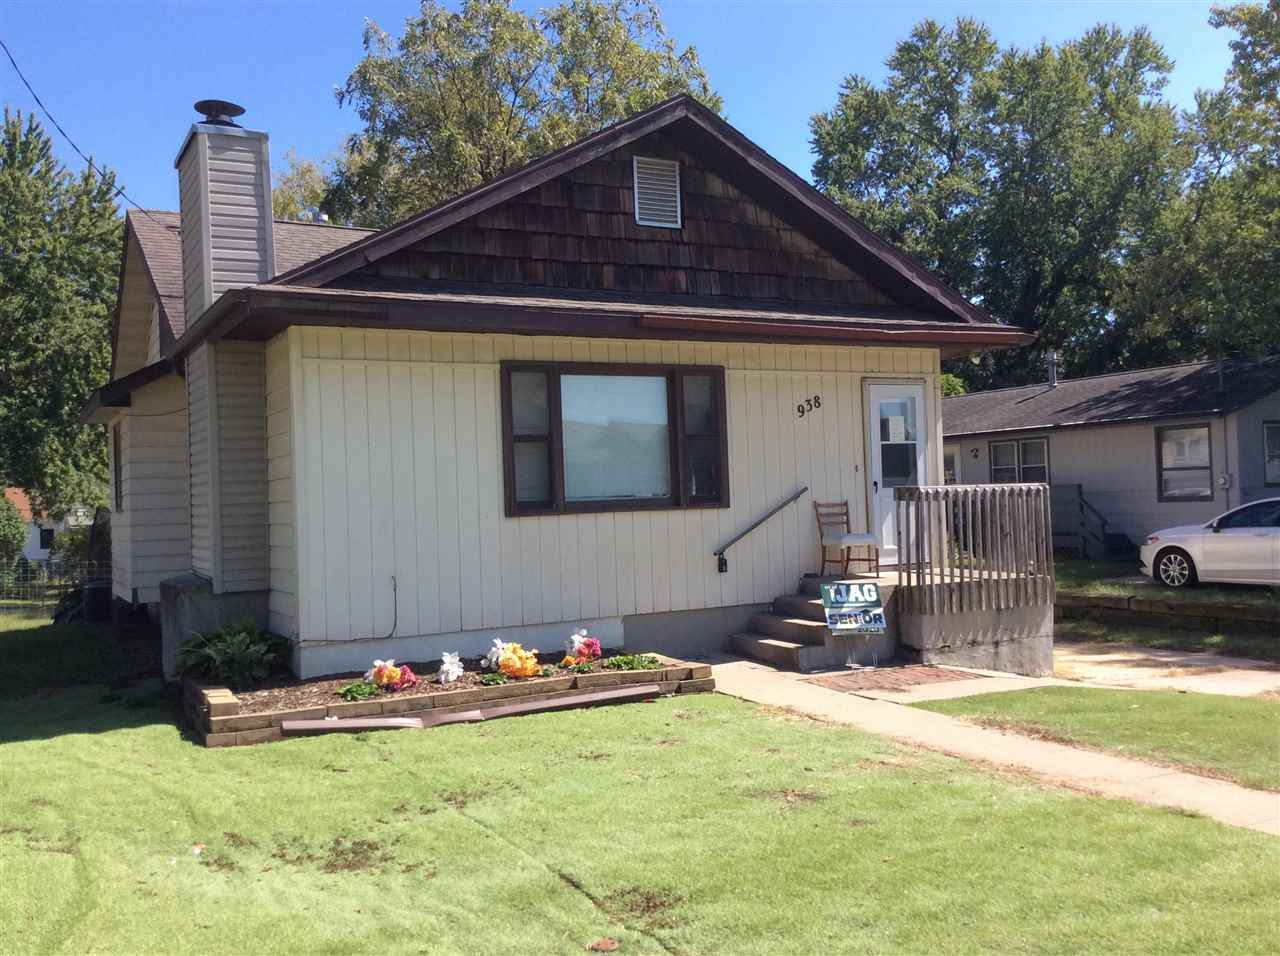 938 Miller Ave - Photo 1